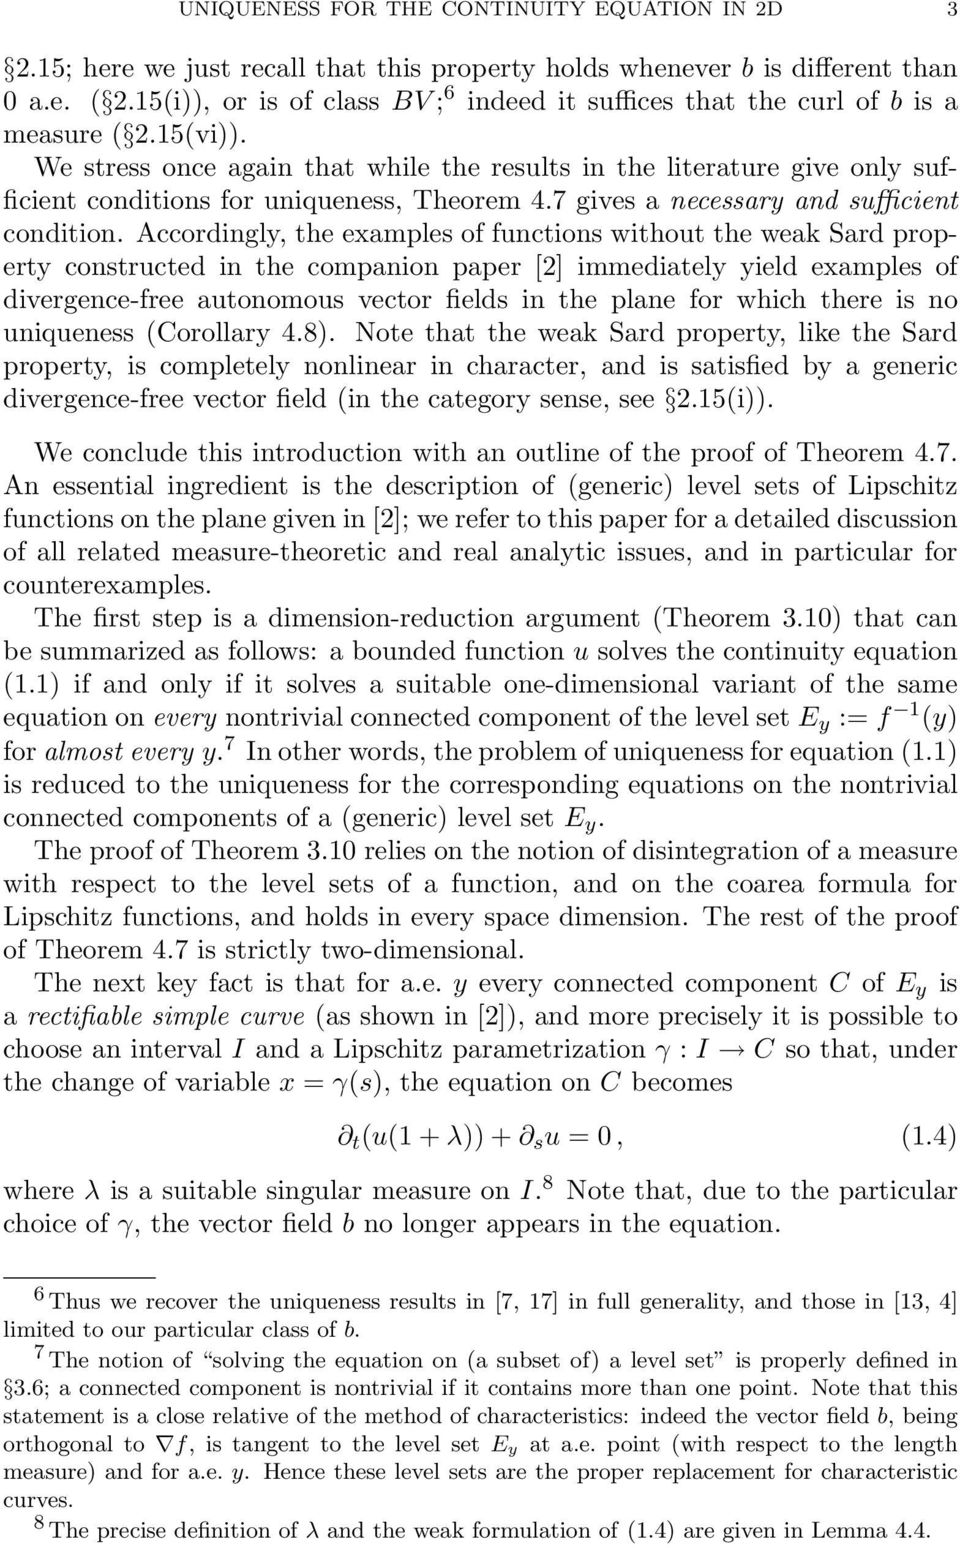 Accordingly, the examples of functions without the weak Sard property constructed in the companion paper [2] immediately yield examples of divergence-free autonomous vector fields in the plane for